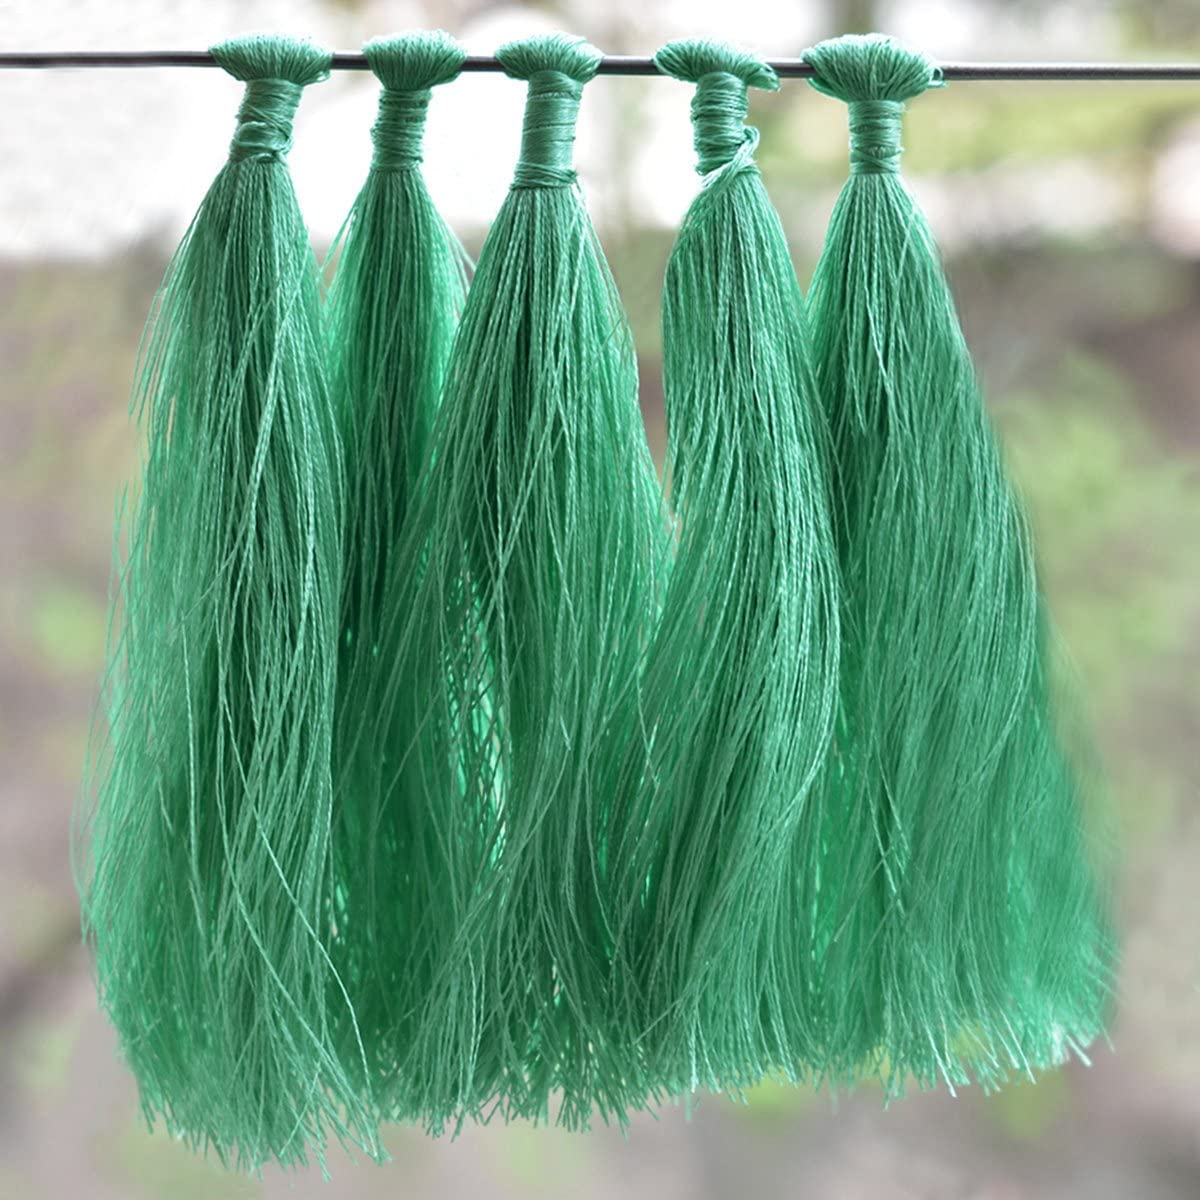 Tassels for Craft,Earring Making and Decoration Purpose (10 Pieces,Sea Green Color)